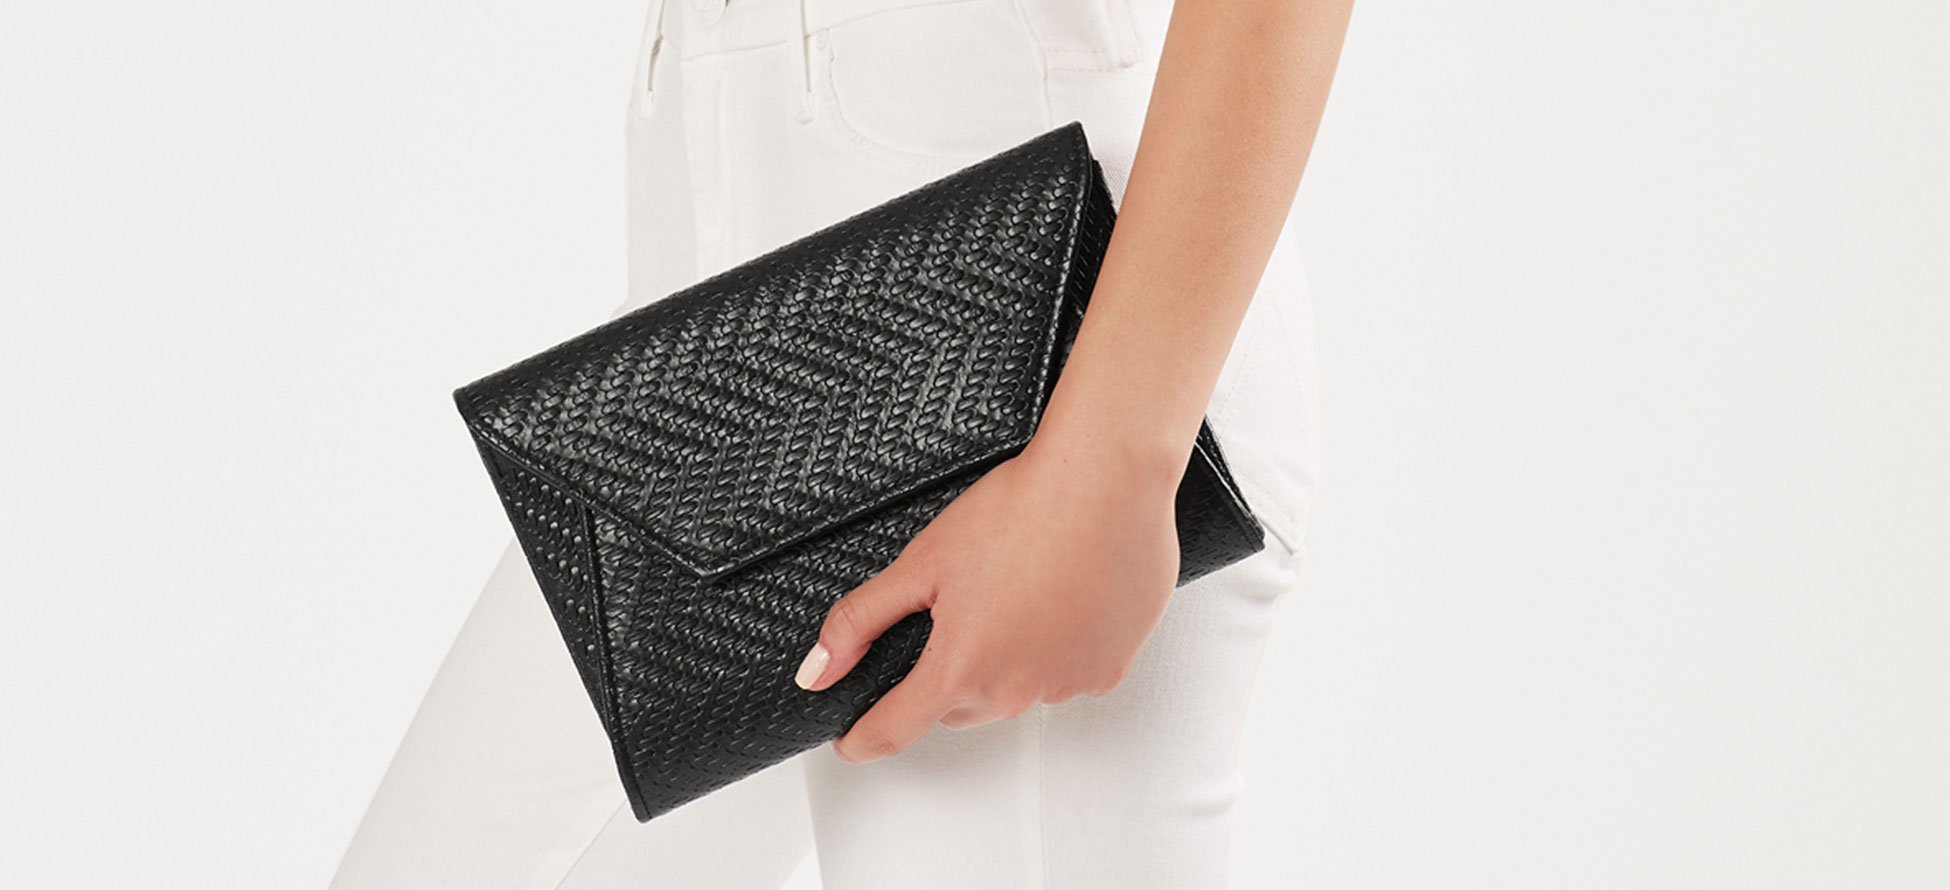 Clutch Bags - The Most Versatile Handbag